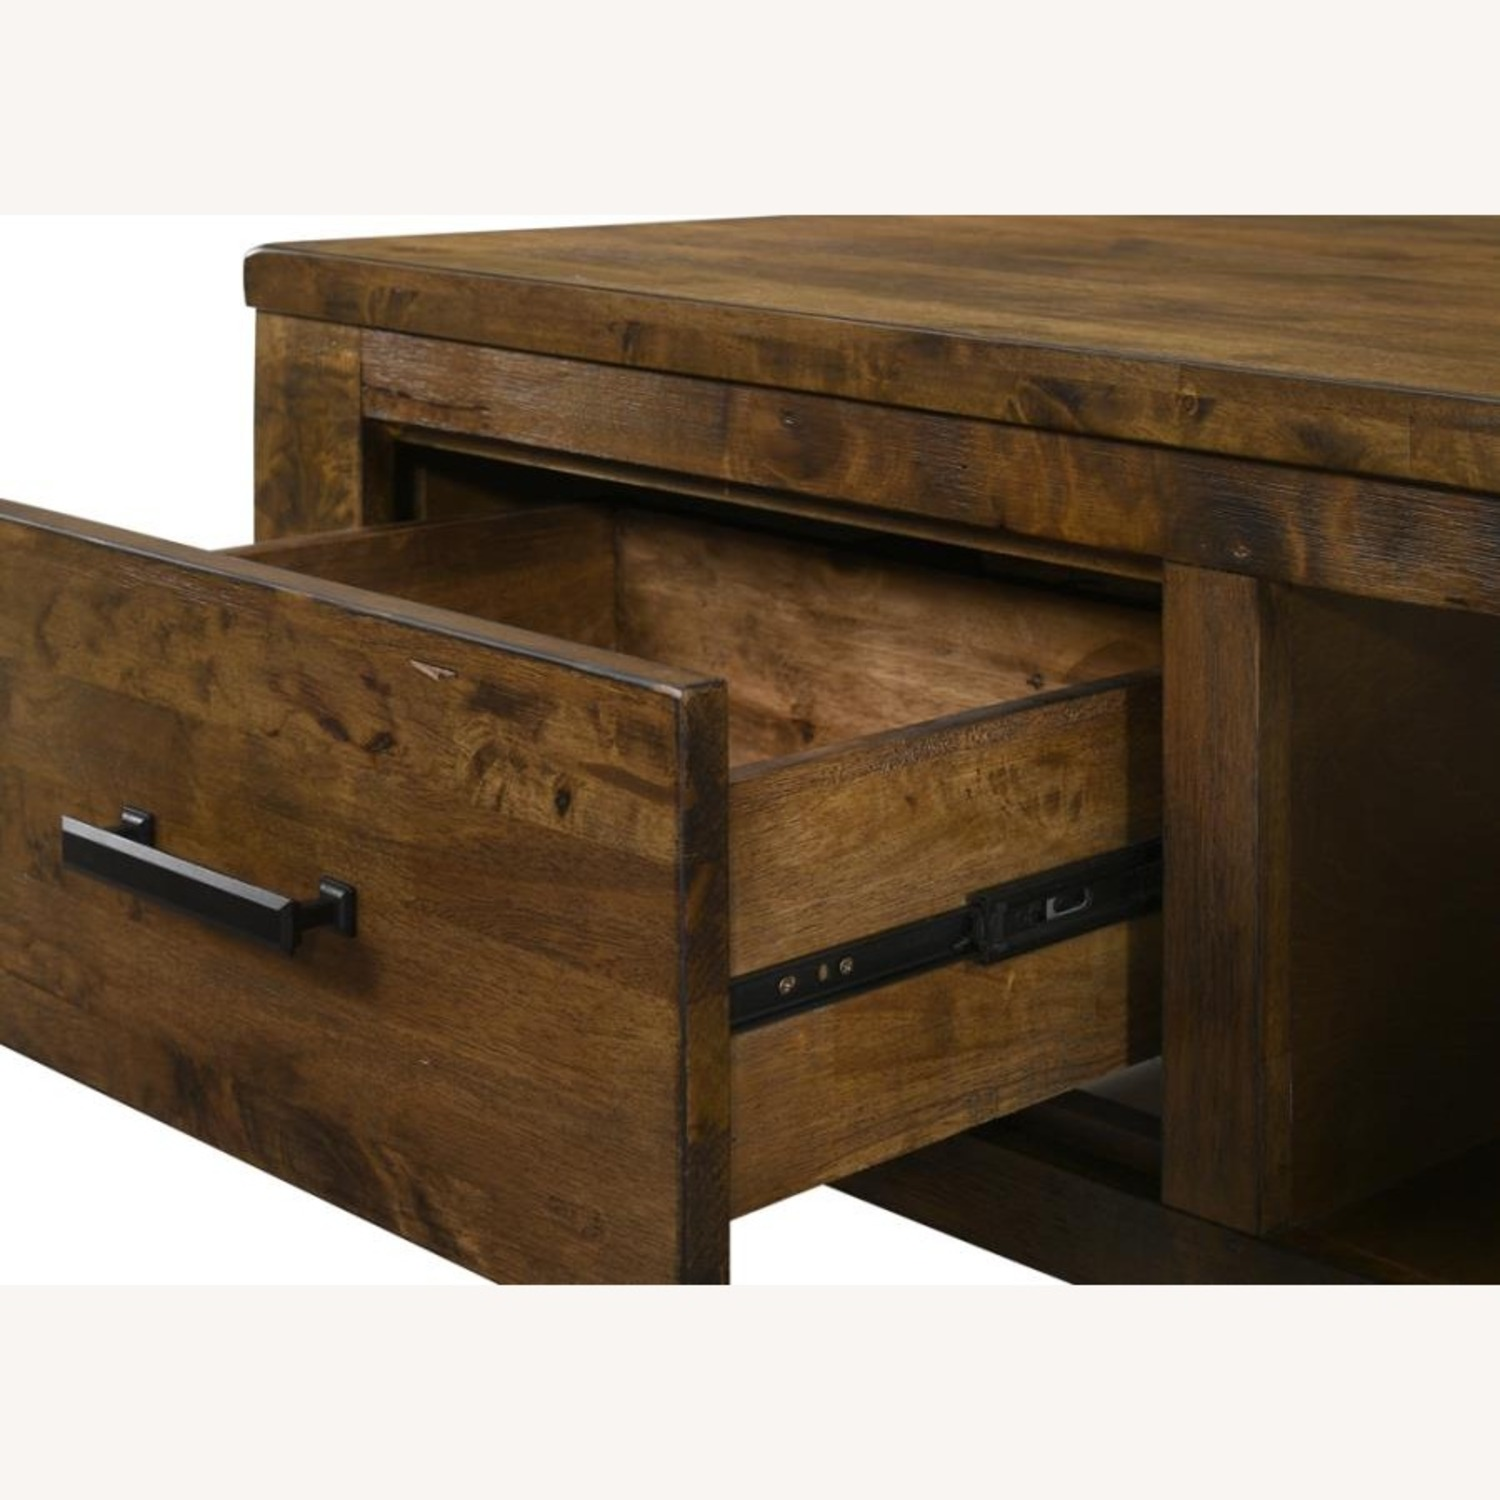 Coffee Table W/ Drawer In Brown Sugar Finish  - image-1